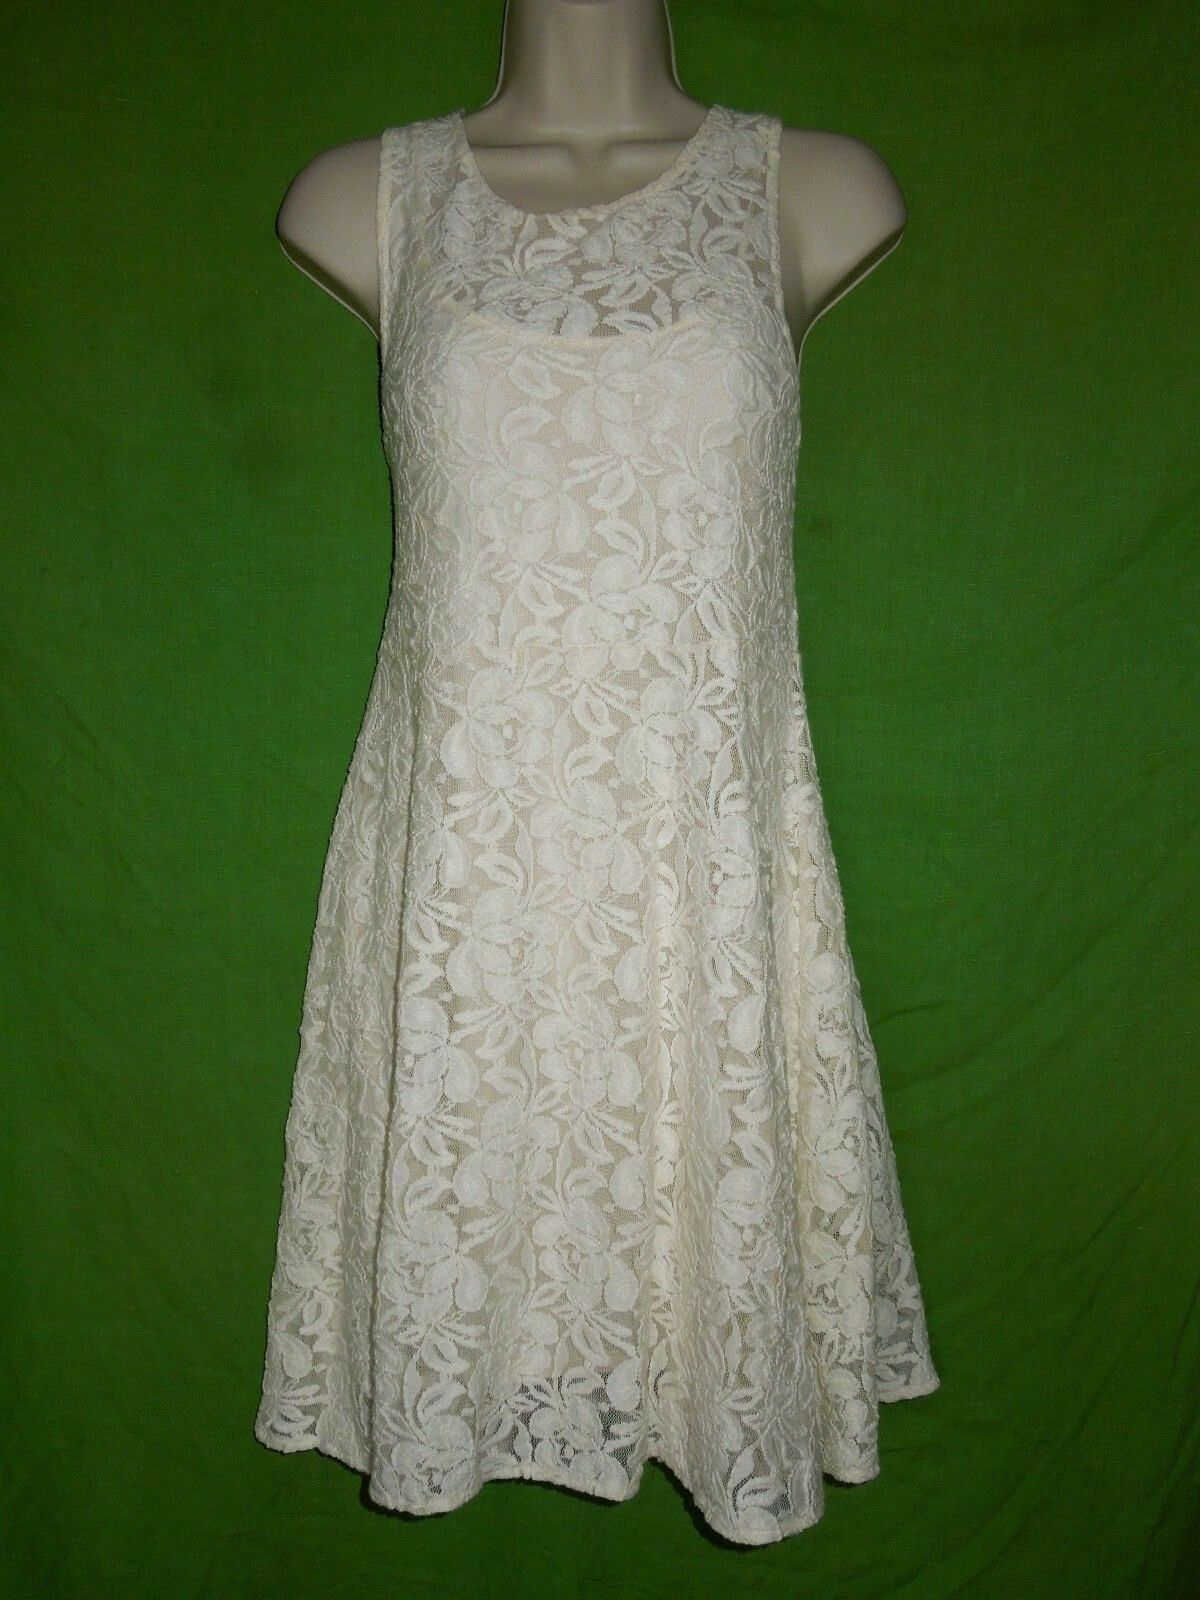 Free People sleeveless dress size S ivory lace lined A-line